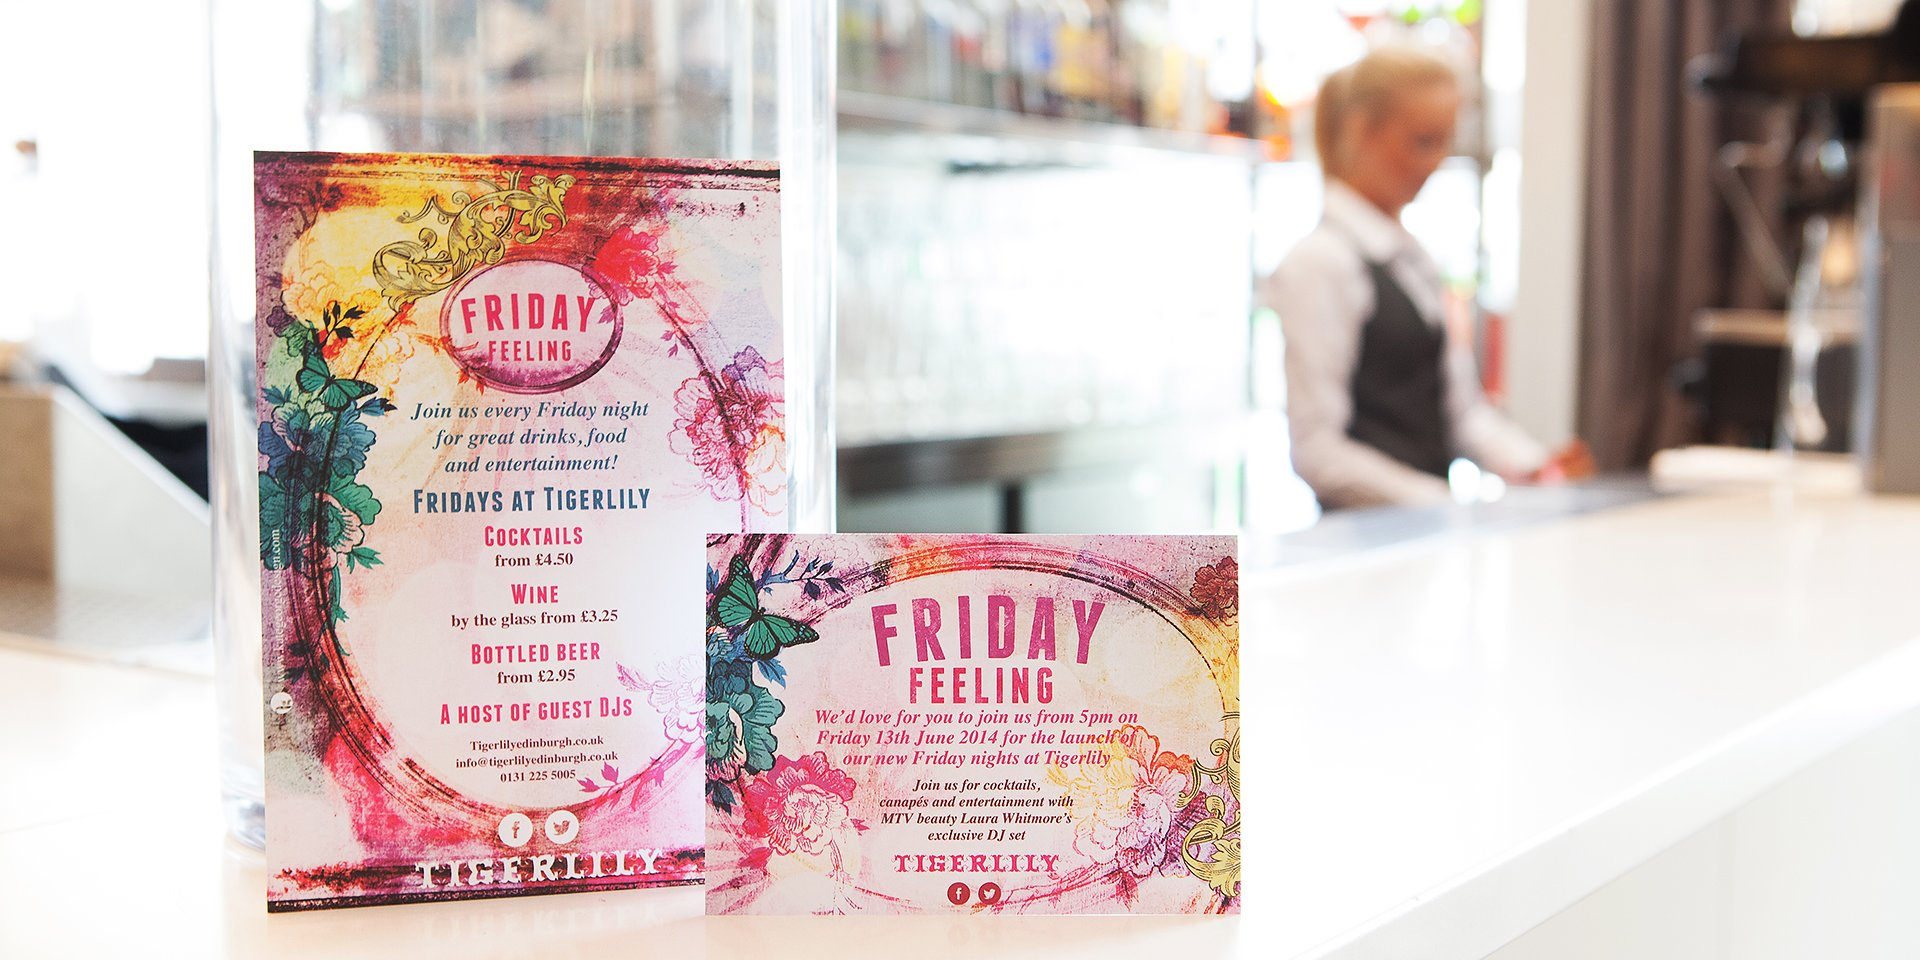 Beautiful floral inspired leaflets for Tigerlily Edinburgh 'Friday Feeling ' promotion nights